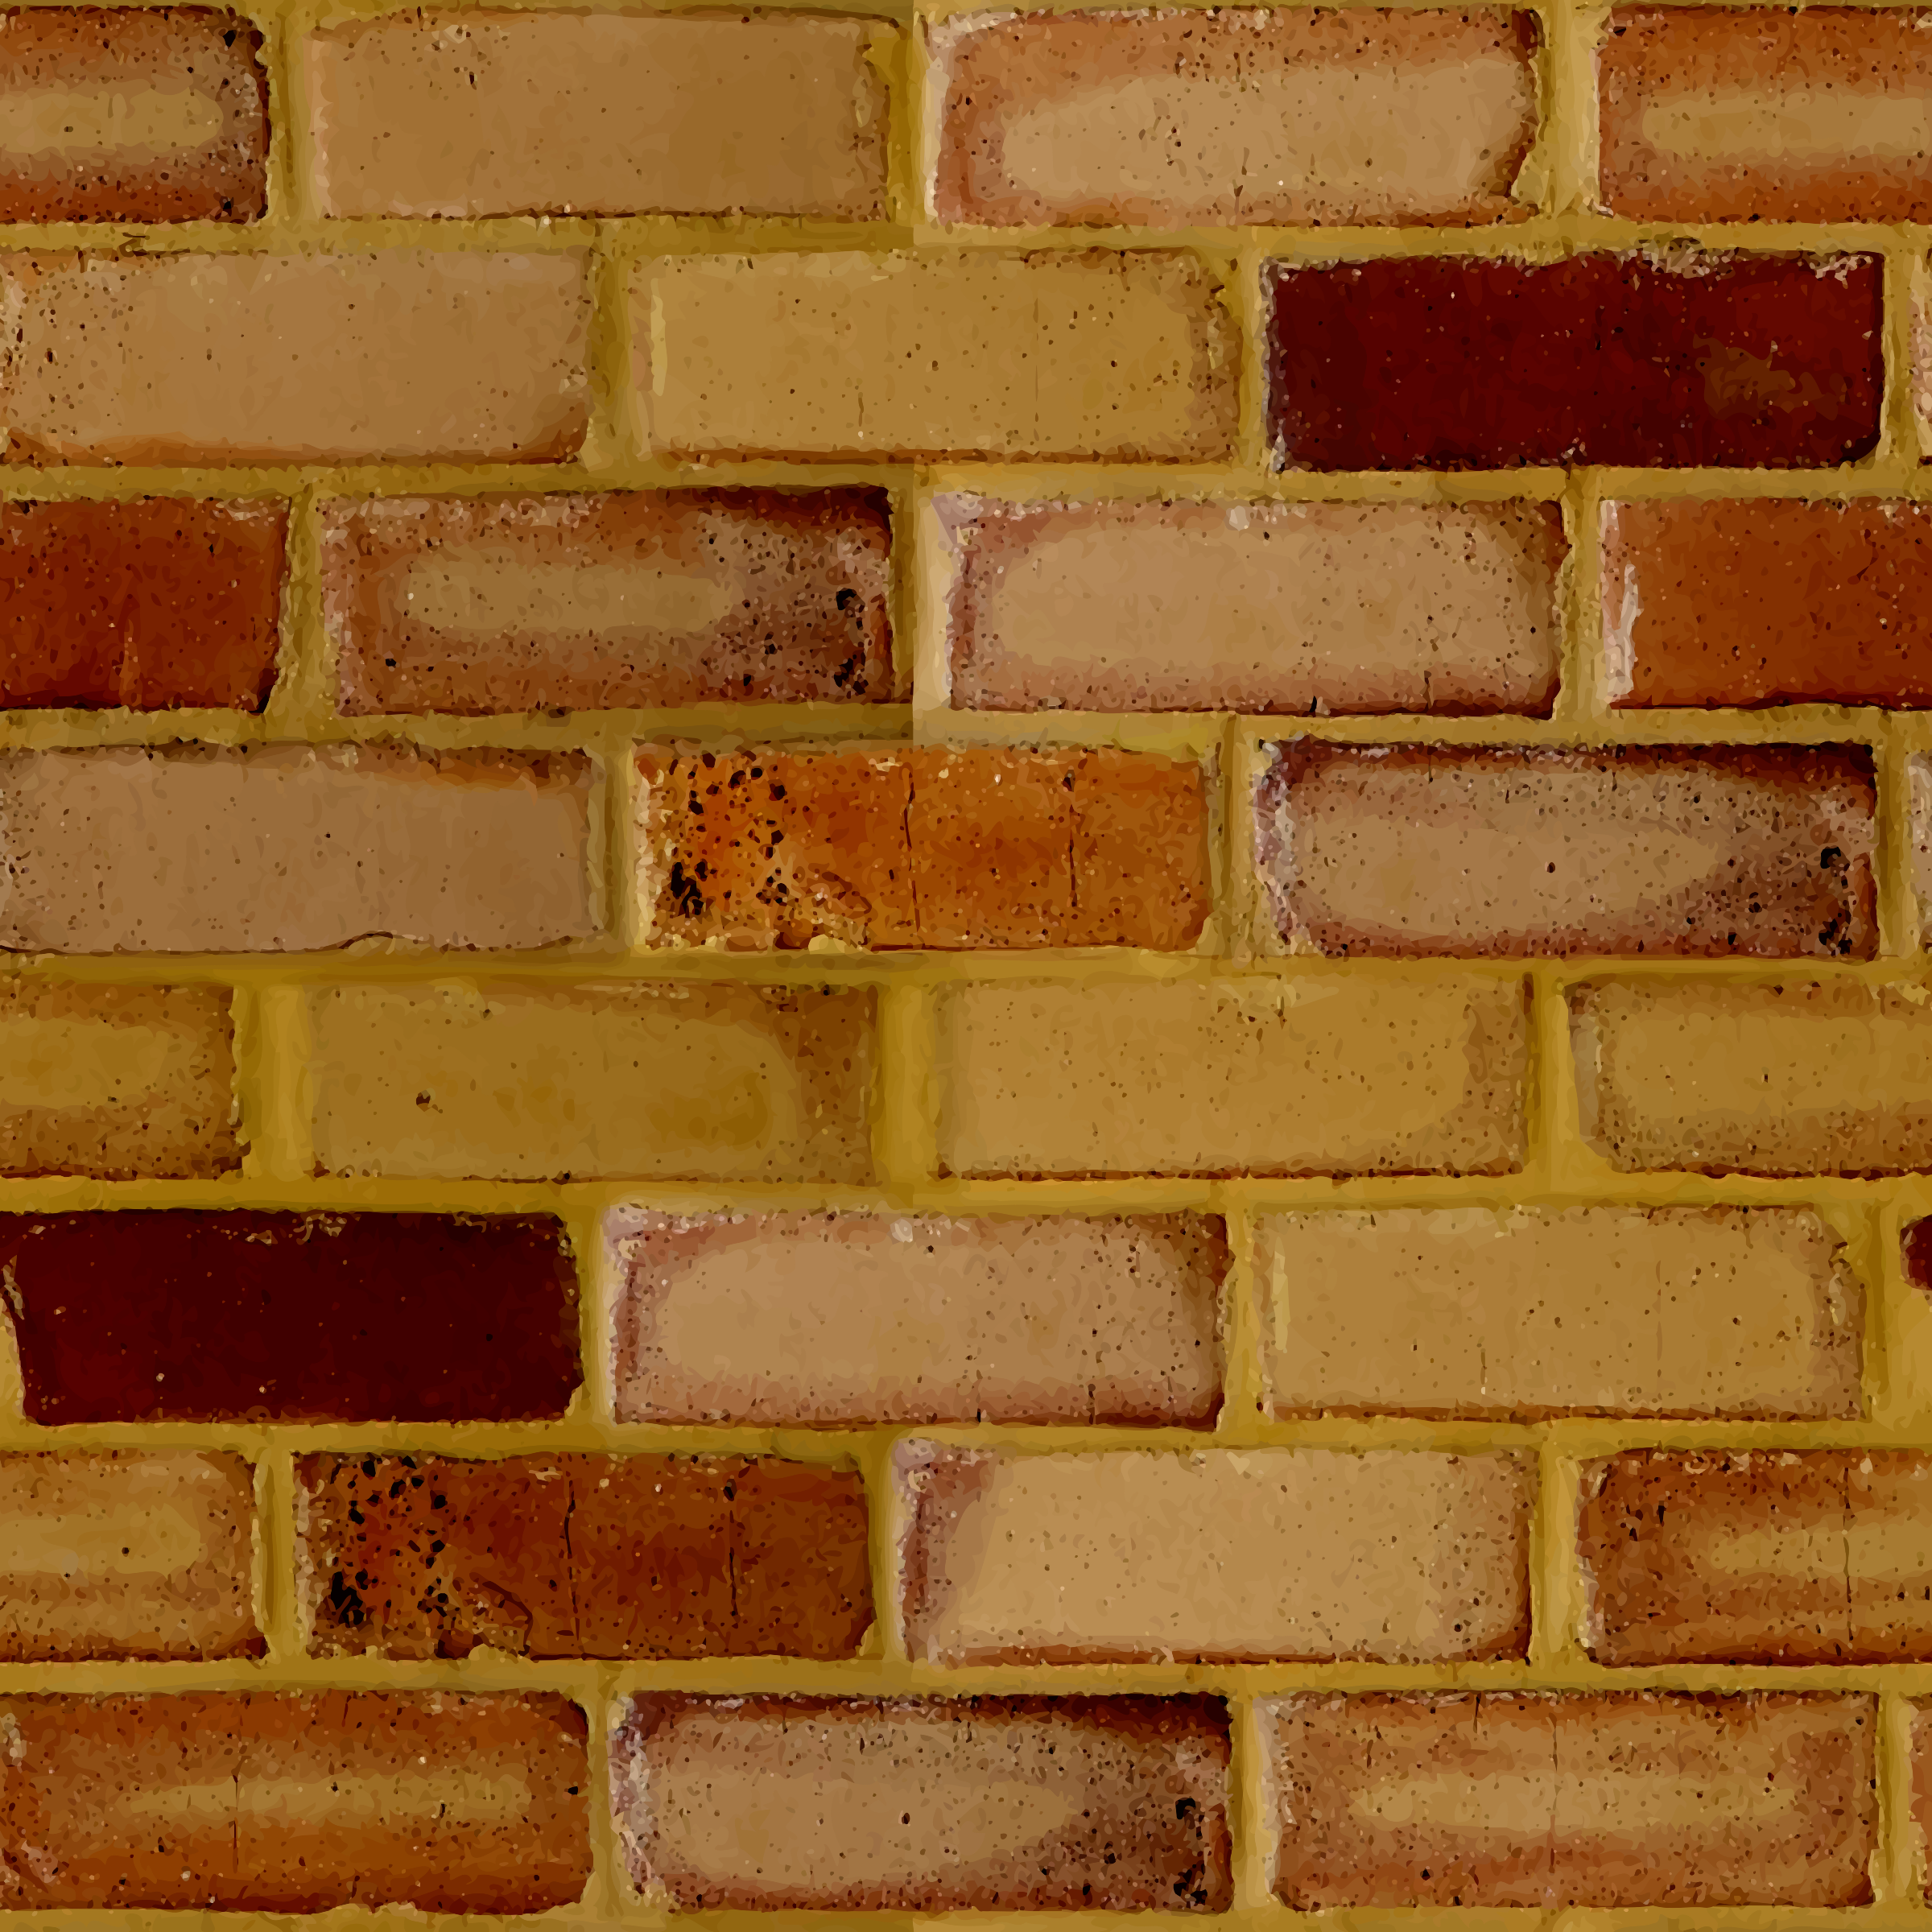 Brick wall 2 by Firkin